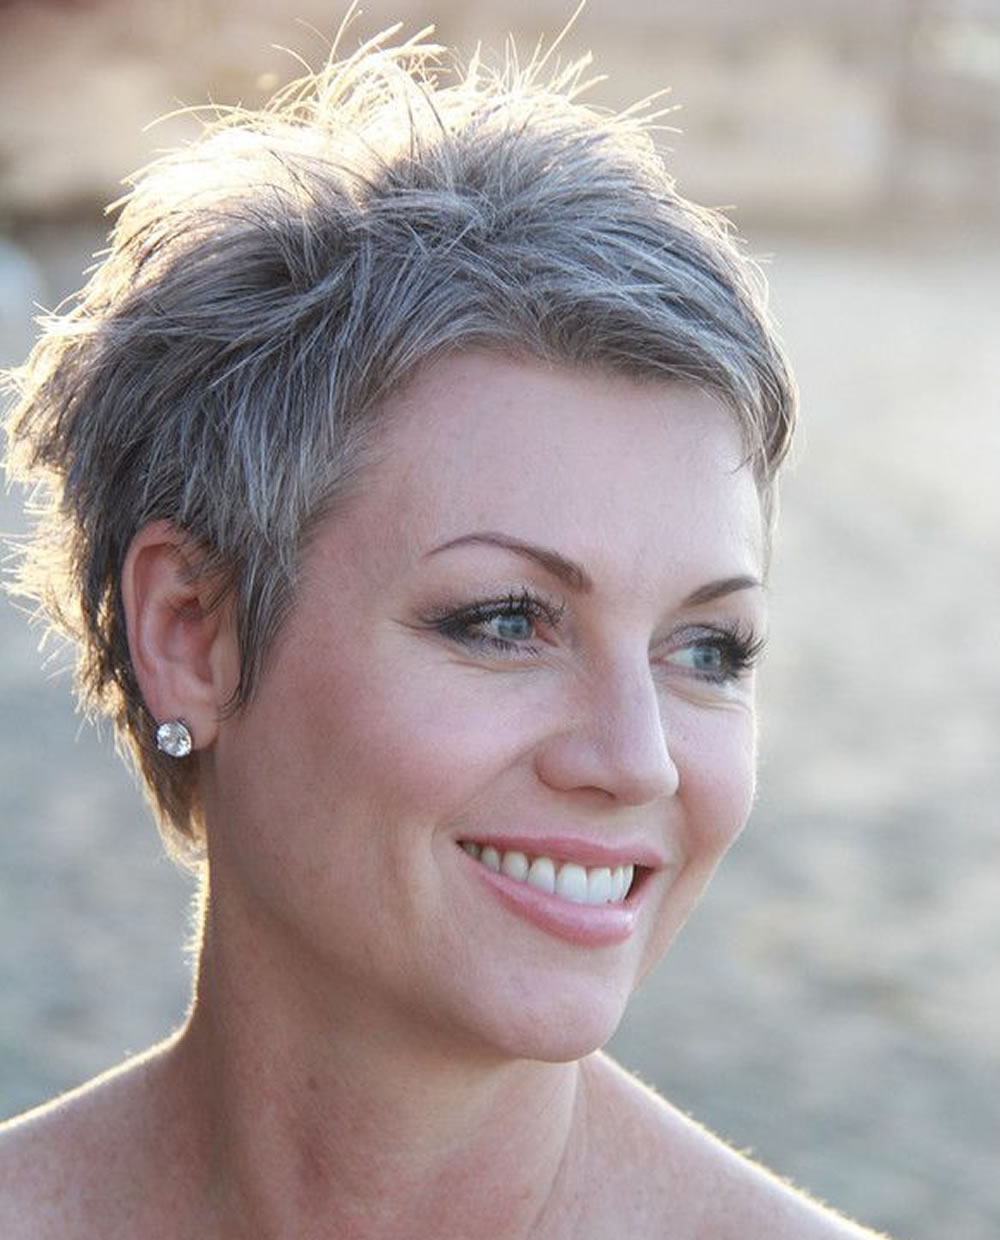 Grey Pixie Hair Cut & Gray Hair Colors For Short Hair – Hairstyles For Gray Pixie Hairstyles For Over 50 (Gallery 7 of 20)